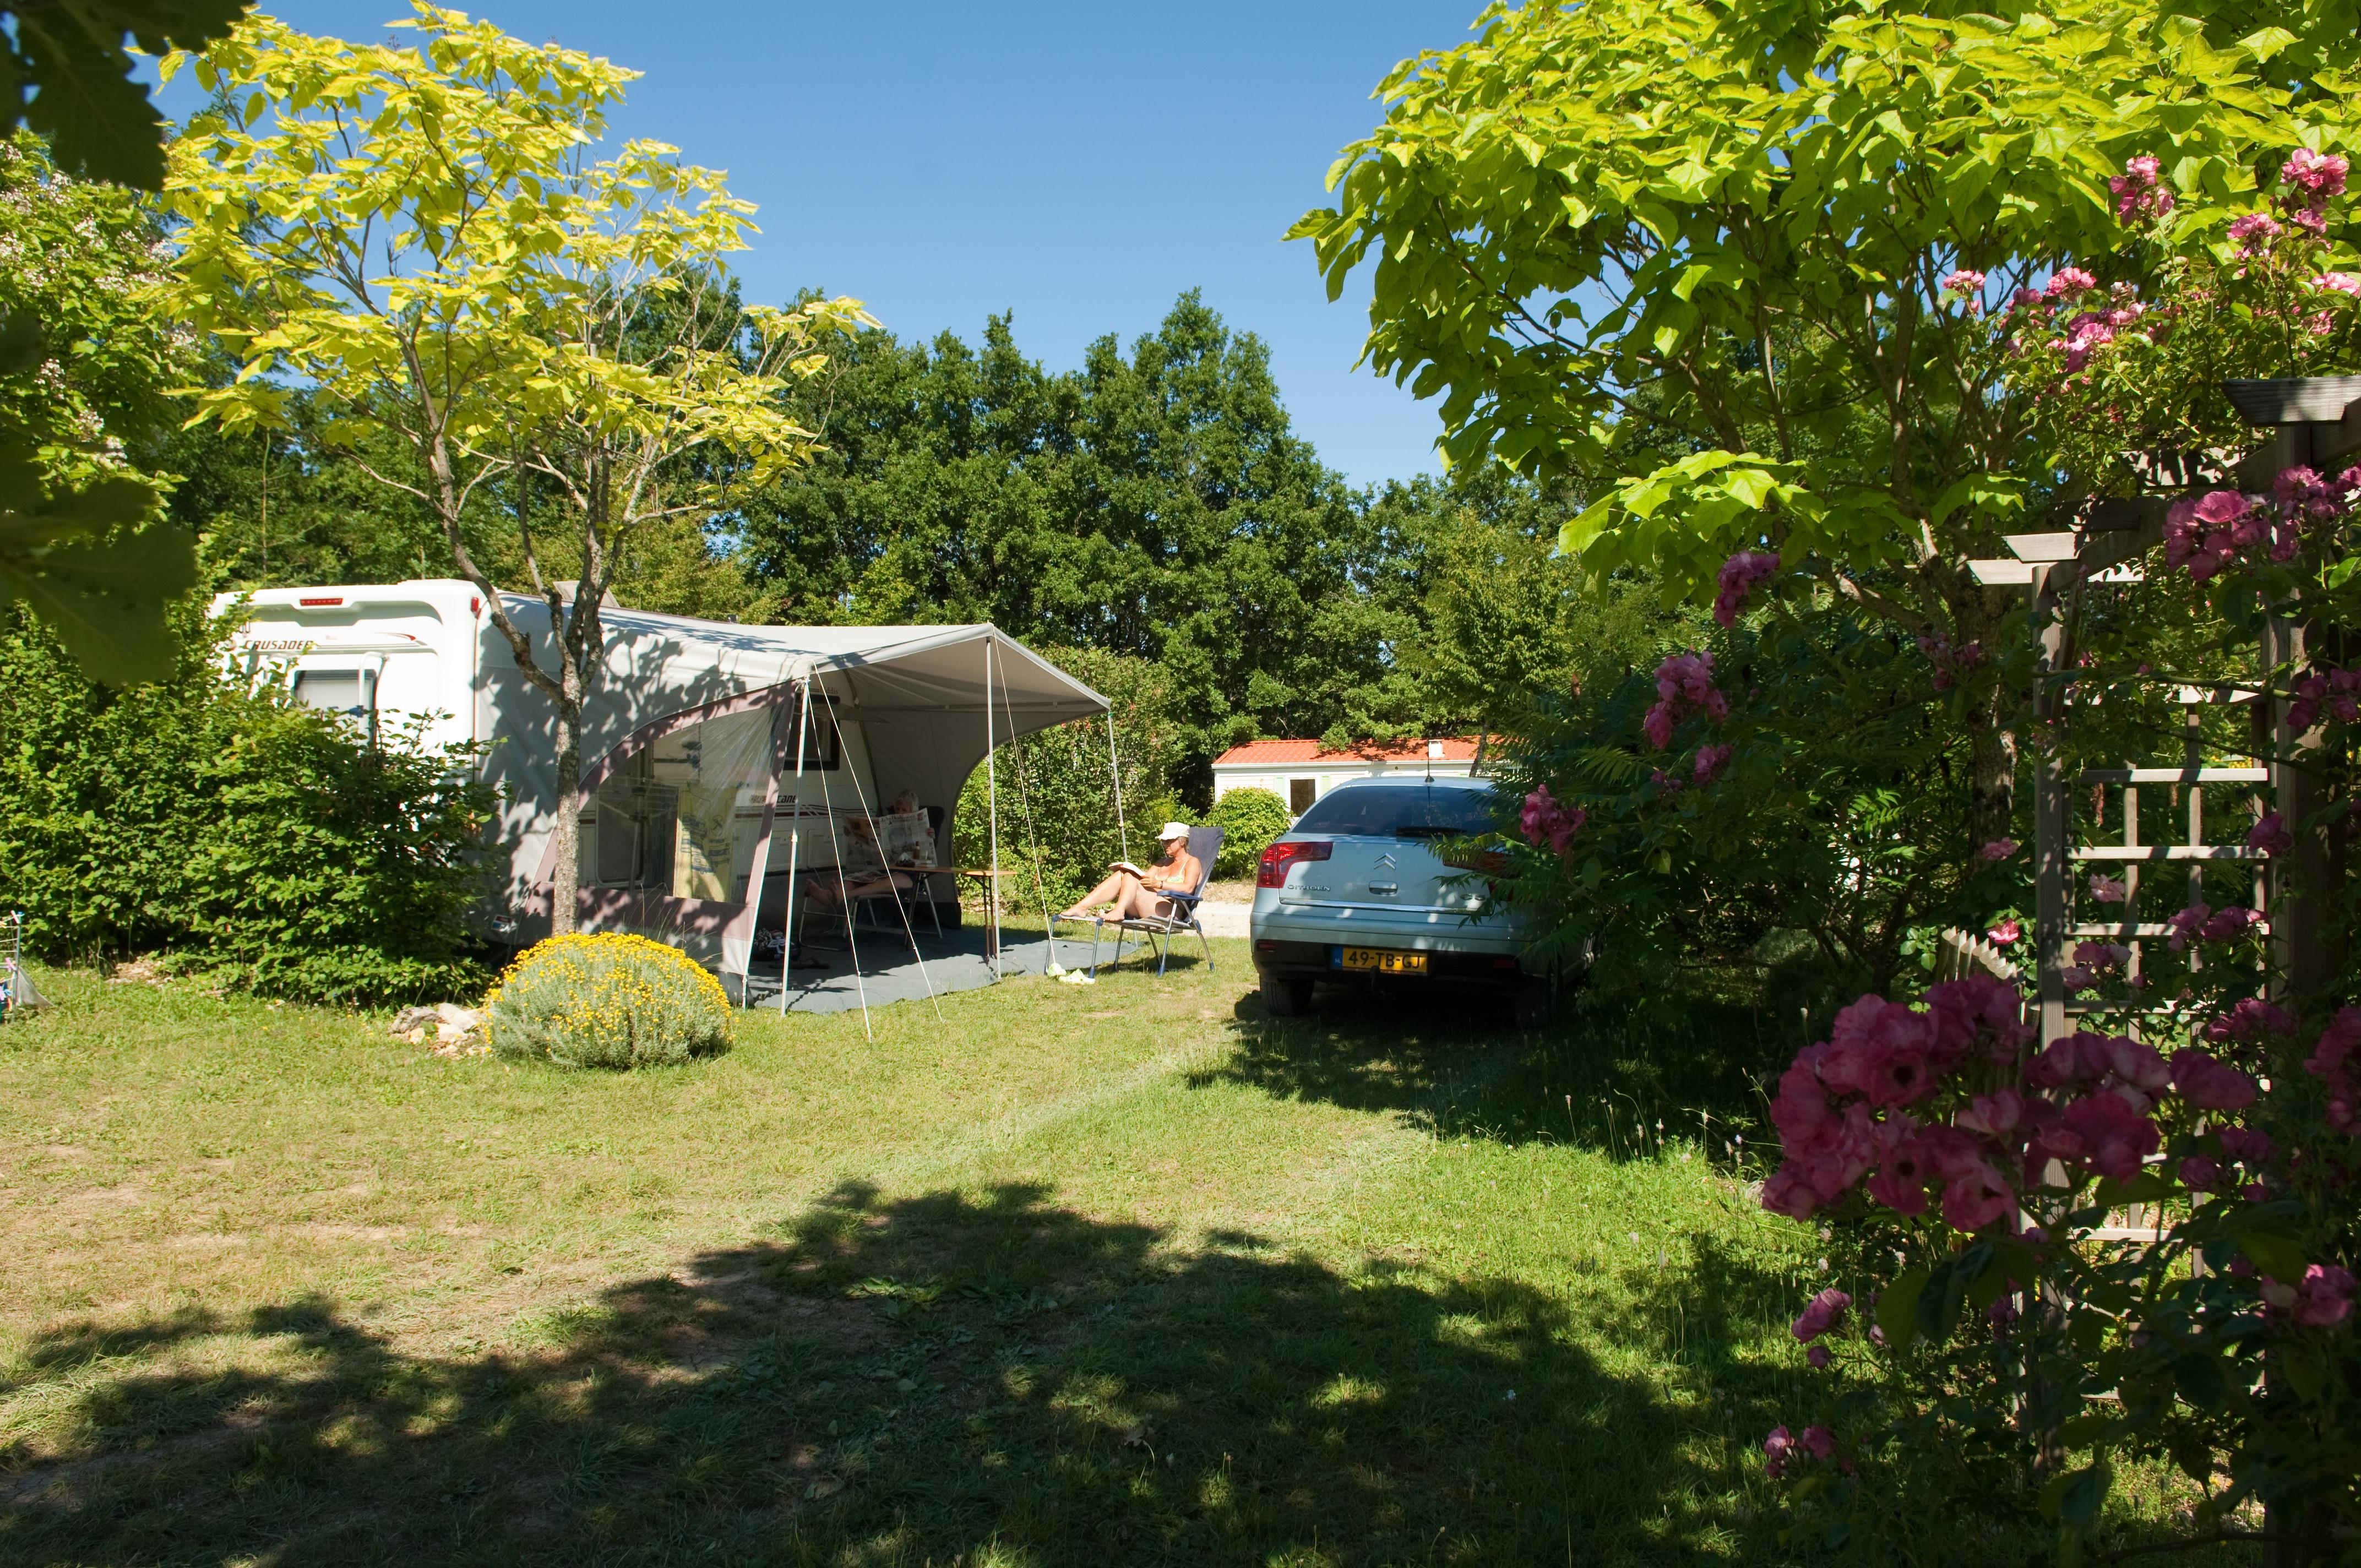 Privilège Package (1 tent, caravan or motorhome / 1 car / electricity 10A) + Water point + pitch XXL 250m²